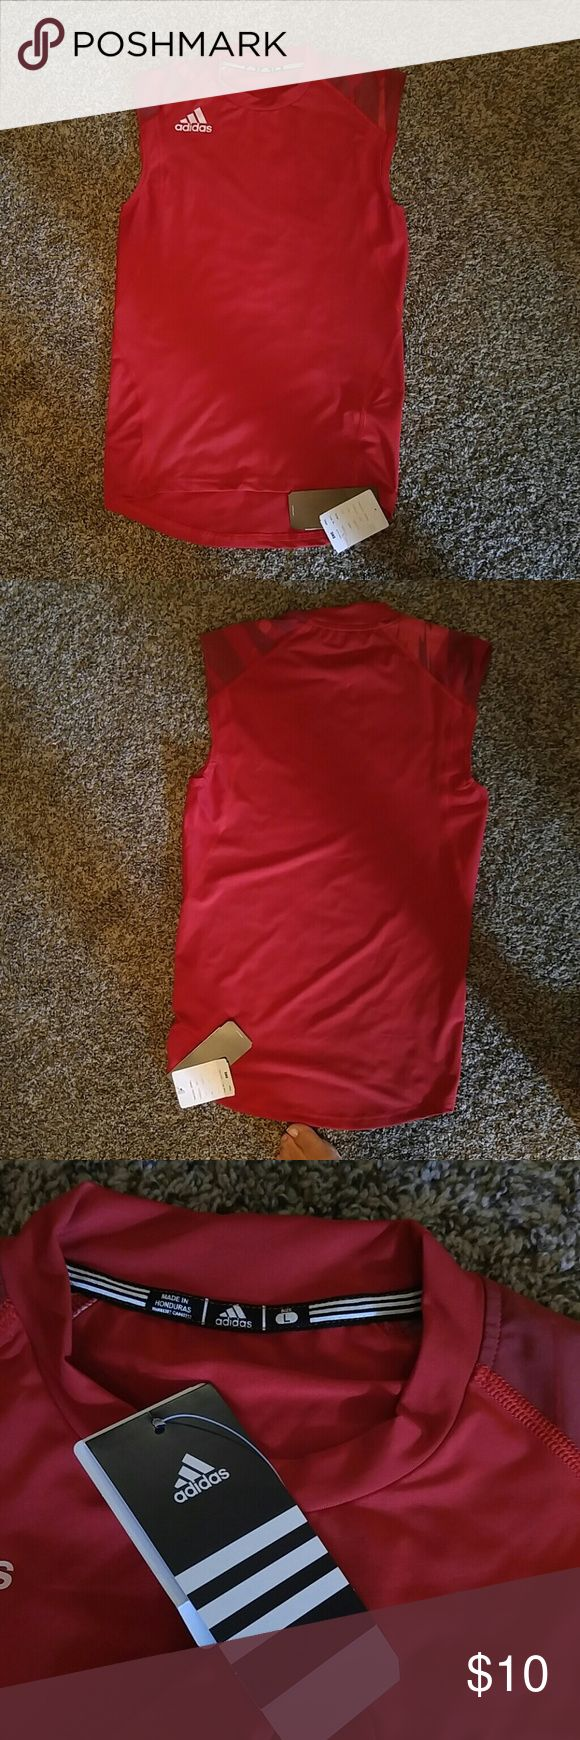 NWT Adidas workout shirt Sleeveless, red workout shirt. Fits both youth large or adult small. Adidas Tops Muscle Tees